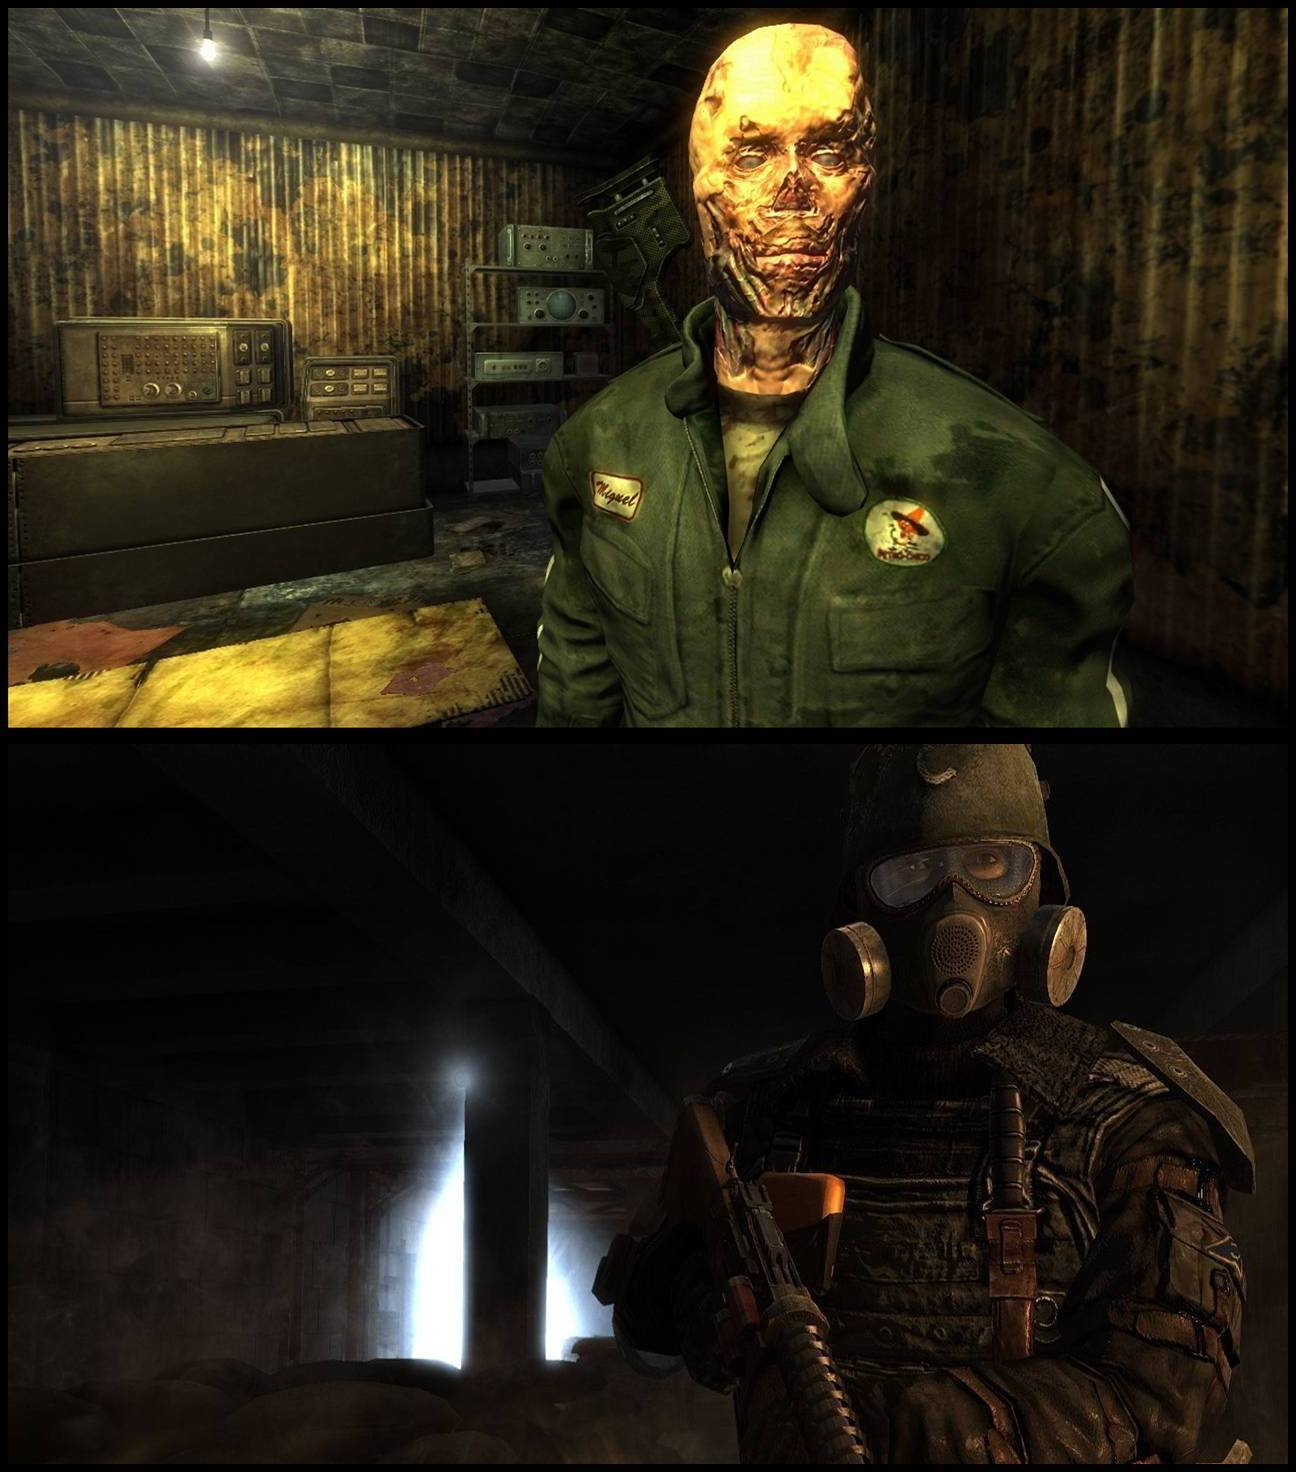 fallout: new vegas versus metro 2033: hd screenshot comparison